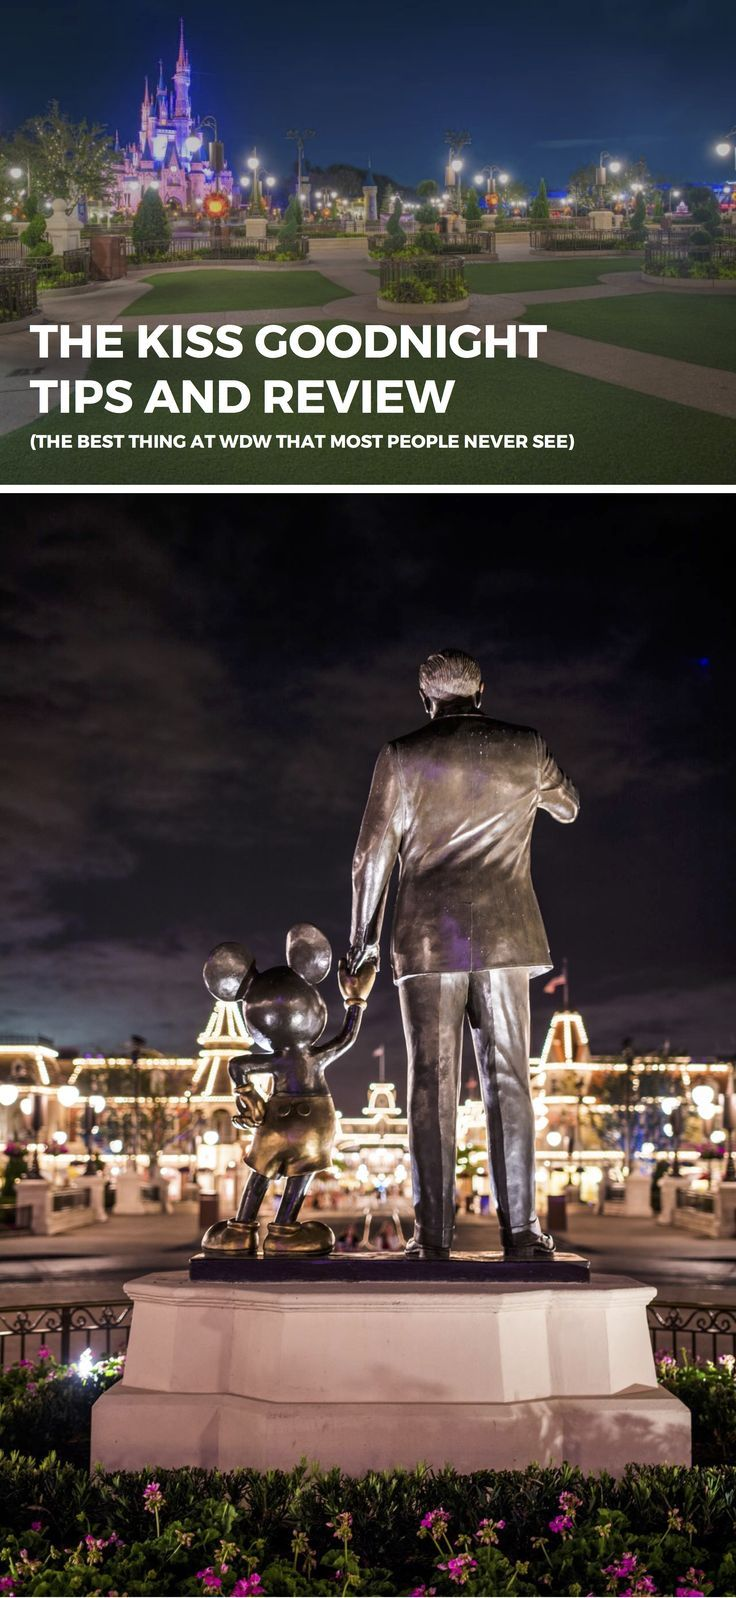 Have You Seen The Disney Magic Cruise Ship: Walt Disney World's The Kiss Goodnight Tips And Review